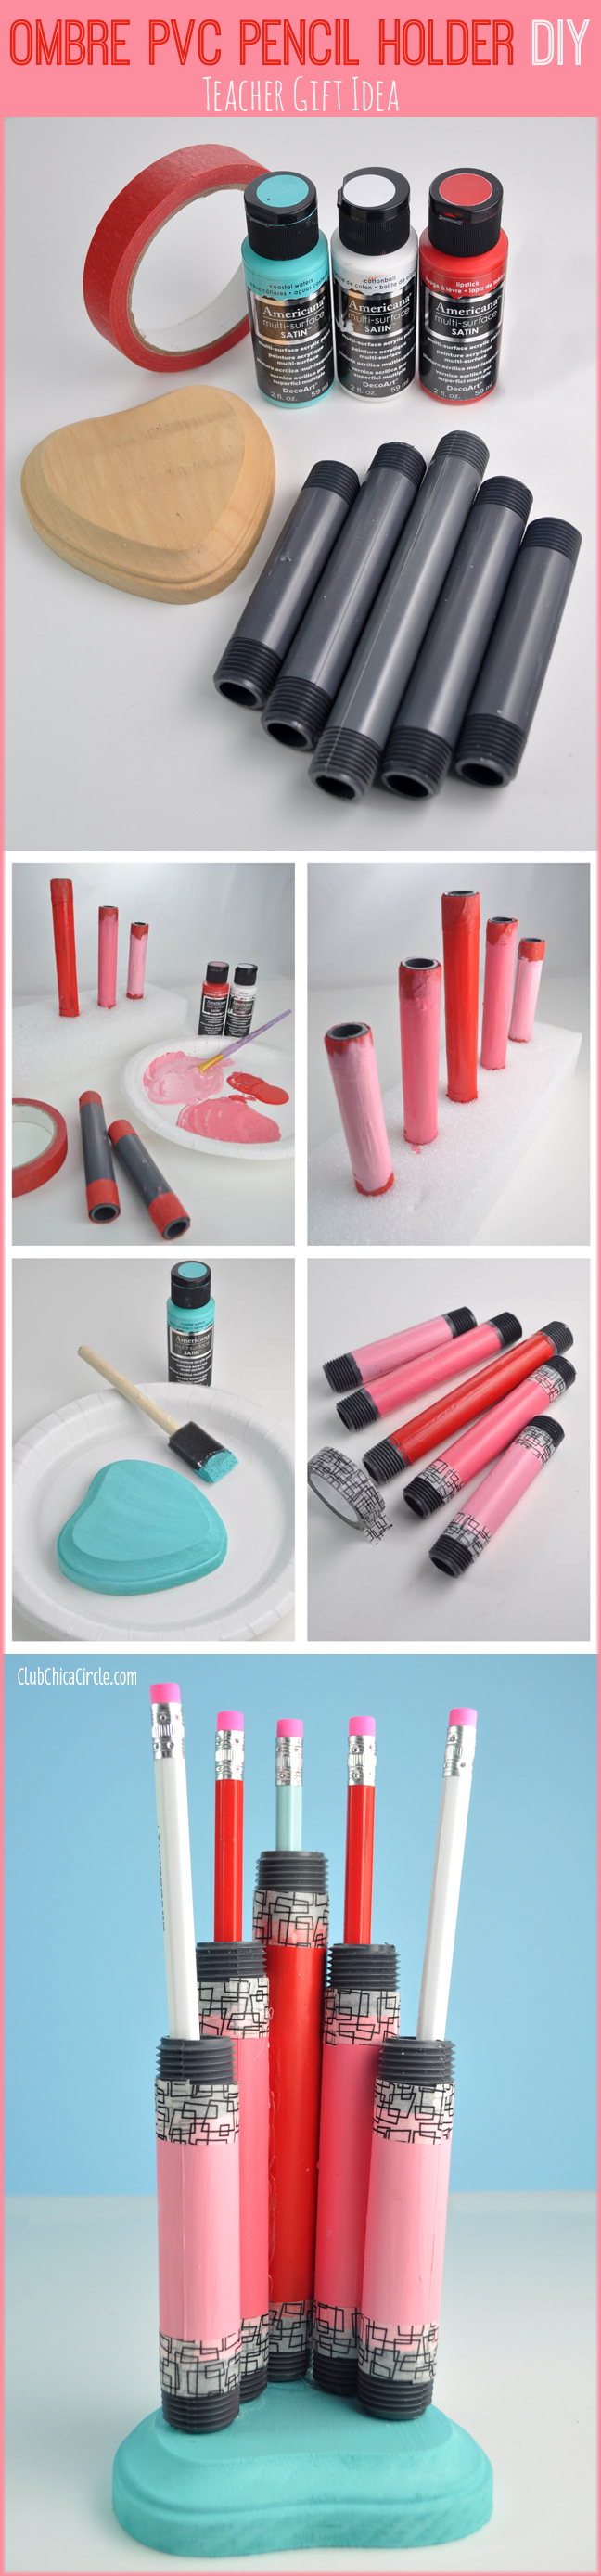 Ombre PVC Pencil Holder DIY craft idea and teacher gift